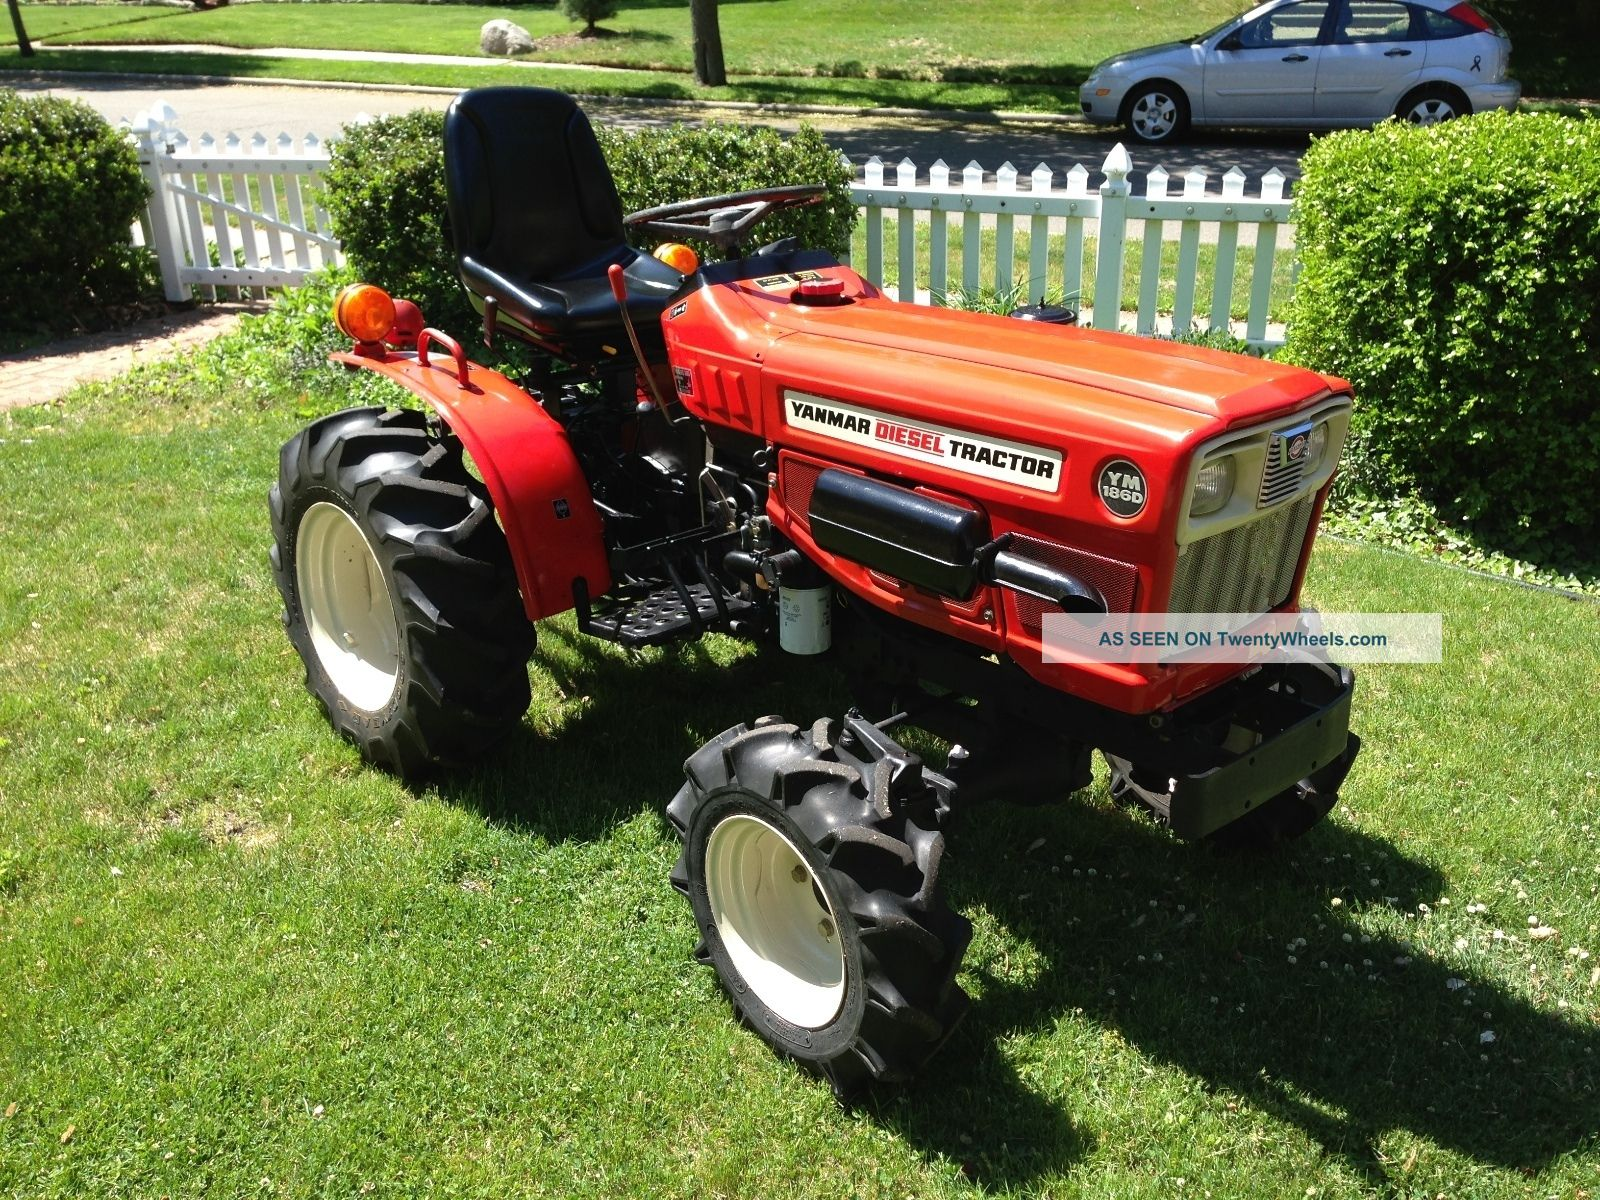 Yanmar Ym186d Fwd Diesel Tractor With Mower, Weights